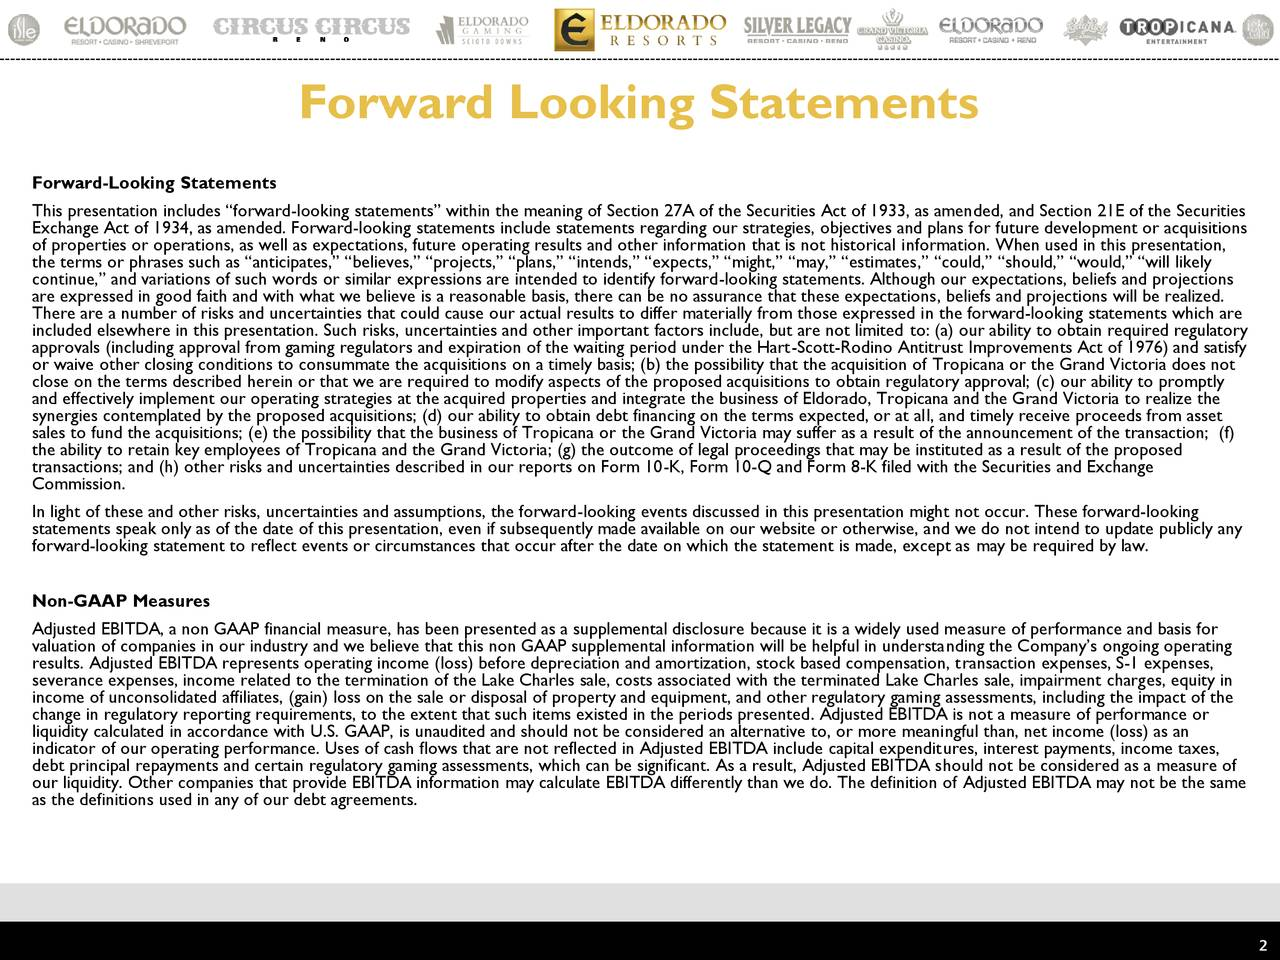 """Forward-Looking Statements This presentation includes """"forward-looking statements"""" within the meaning of Section 27A of the Securities Act of 1933, as amended, and Section 21E of the Securities Exchange Act of 1934, as amended. Forward-looking statements include statements regarding our strategies, objectives and plans for future development or acquisitions of properties or operations, as well as expectations, future operating results and other information that is not historical information. When used in this presentation, the terms or phrases such as """"anticipates,"""" """"believes,"""" """"projects,"""" """"plans,"""" """"intends,"""" """"expects,"""" """"might,"""" """"may,"""" """"estimates,"""" """"could,"""" """"should,"""" """"would,"""" """"will likely continue,"""" and variations of such words or similar expressions are intended to identify forward-looking statements. Although our expectations, beliefs and projections are expressed in good faith and with what we believe is a reasonable basis, there can be no assurance that these expectations, beliefs and projections will be realized. There are a number of risks and uncertainties that could cause our actual results to differ materially from those expressed in the forward-looking statements which are included elsewhere in this presentation. Such risks, uncertainties and other important factors include, but are not limited to: (a) our ability to obtain required regulatory approvals (including approval from gaming regulators and expiration of the waiting period under the Hart-Scott-Rodino Antitrust Improvements Act of 1976) and satisfy or waive other closing conditions to consummate the acquisitions on a timely basis; (b) the possibility that the acquisition of Tropicana or the Grand Victoria does not close on the terms described herein or that we are required to modify aspects of the proposed acquisitions to obtain regulatory approval; (c) our ability to promptly and effectively implement our operating strategies at the acquired properties and integrate the business of Eldorado, Tropi"""